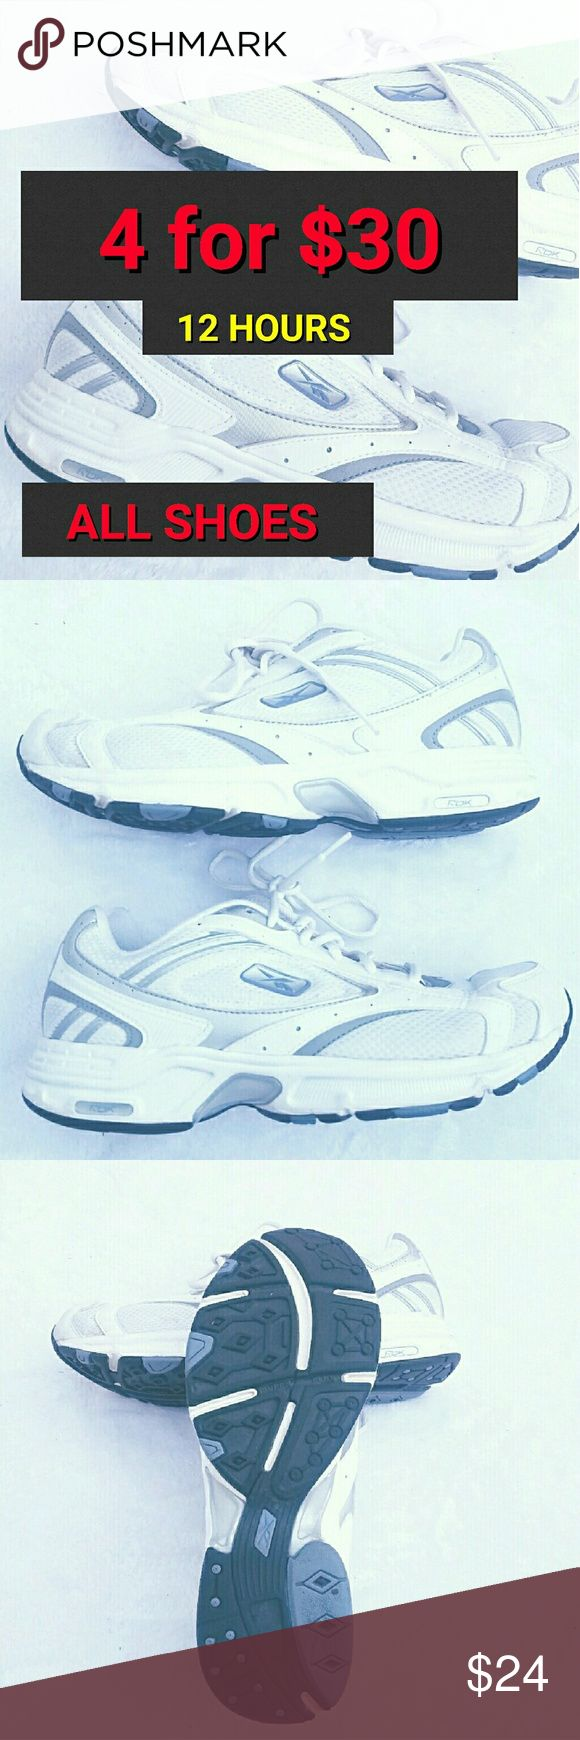 Reebok Women's Tennis Shoes White Sneakers Size 10 Reebok Women's Tennis Shoes White Gray Size 10  HUGE sale 4 more HOURS LEFT Reebok Shoes Sneakers